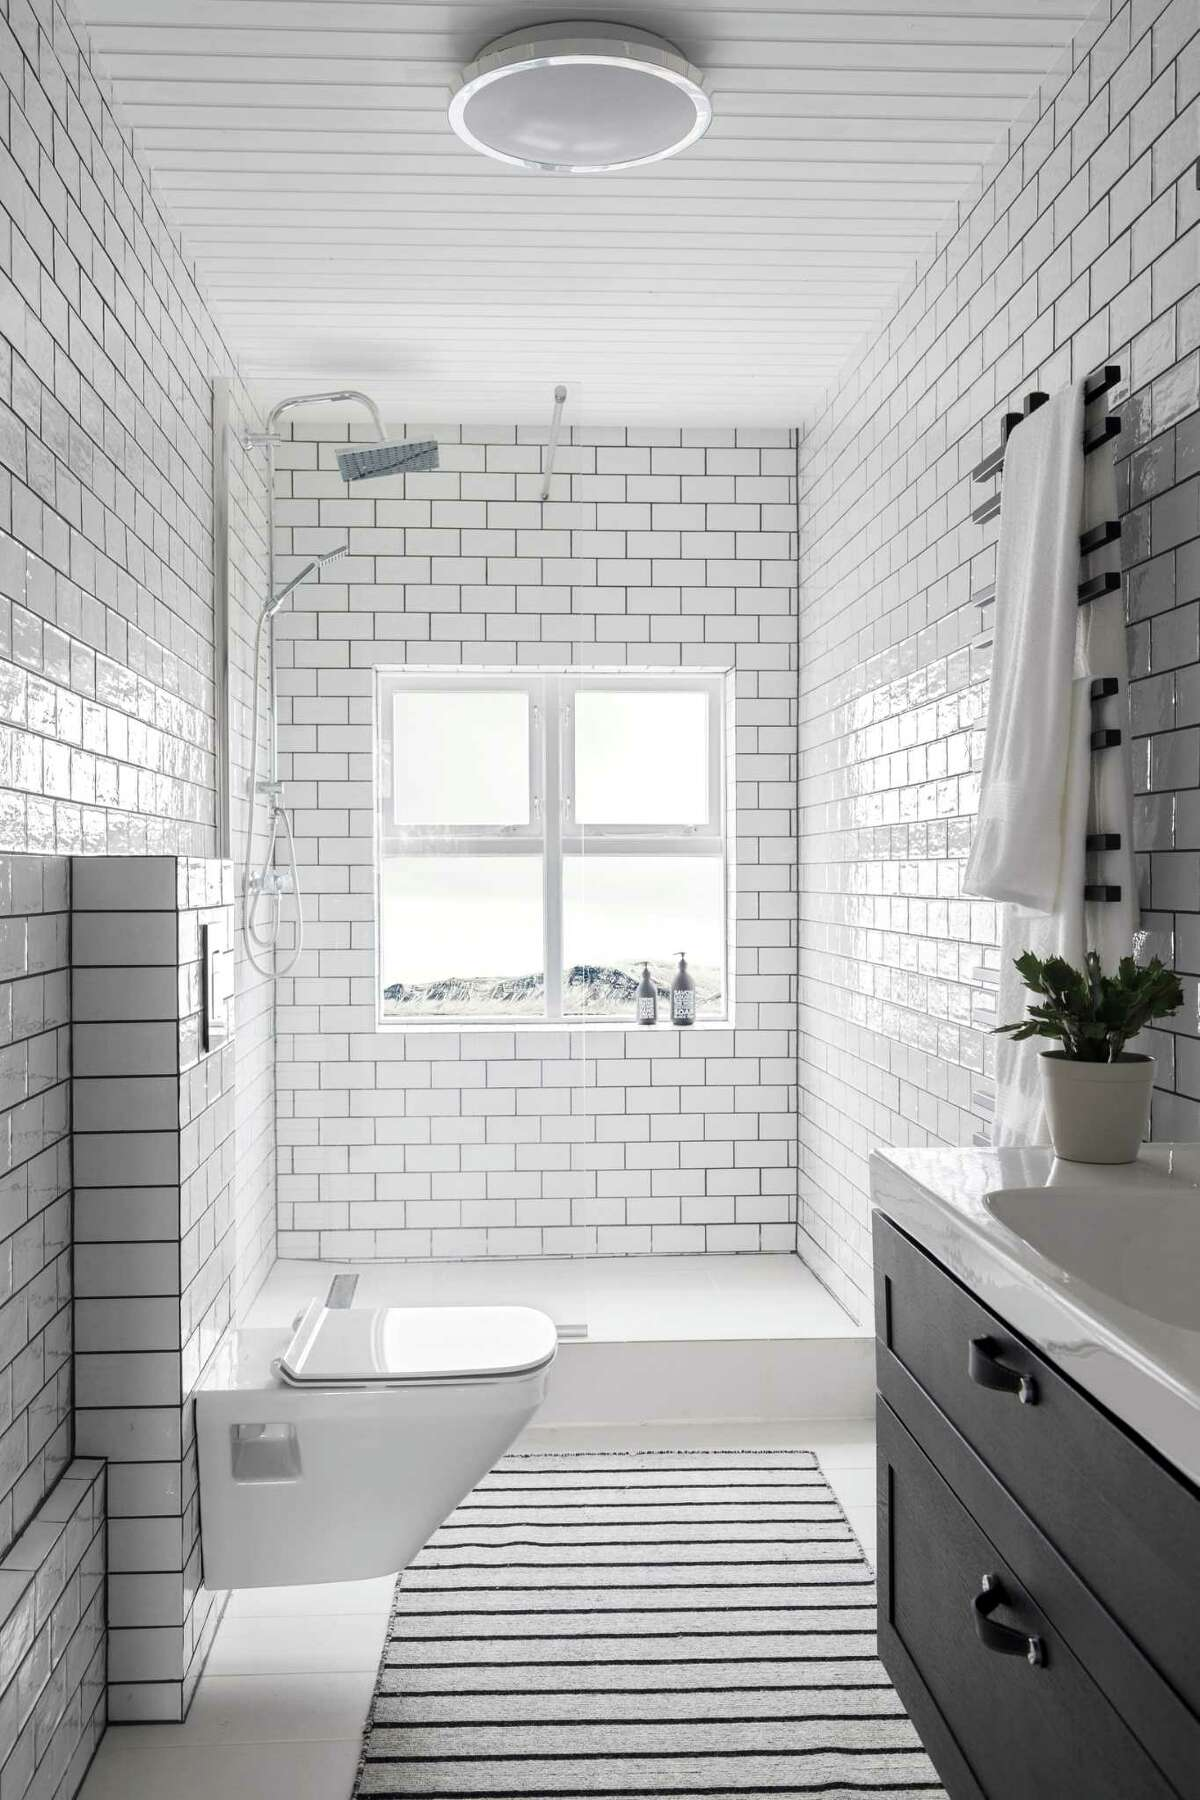 White subway tile is a bathroom mainstay because it is so versatile. In lieu of white grout, a pale gray grout adds just enough contrast for interest.